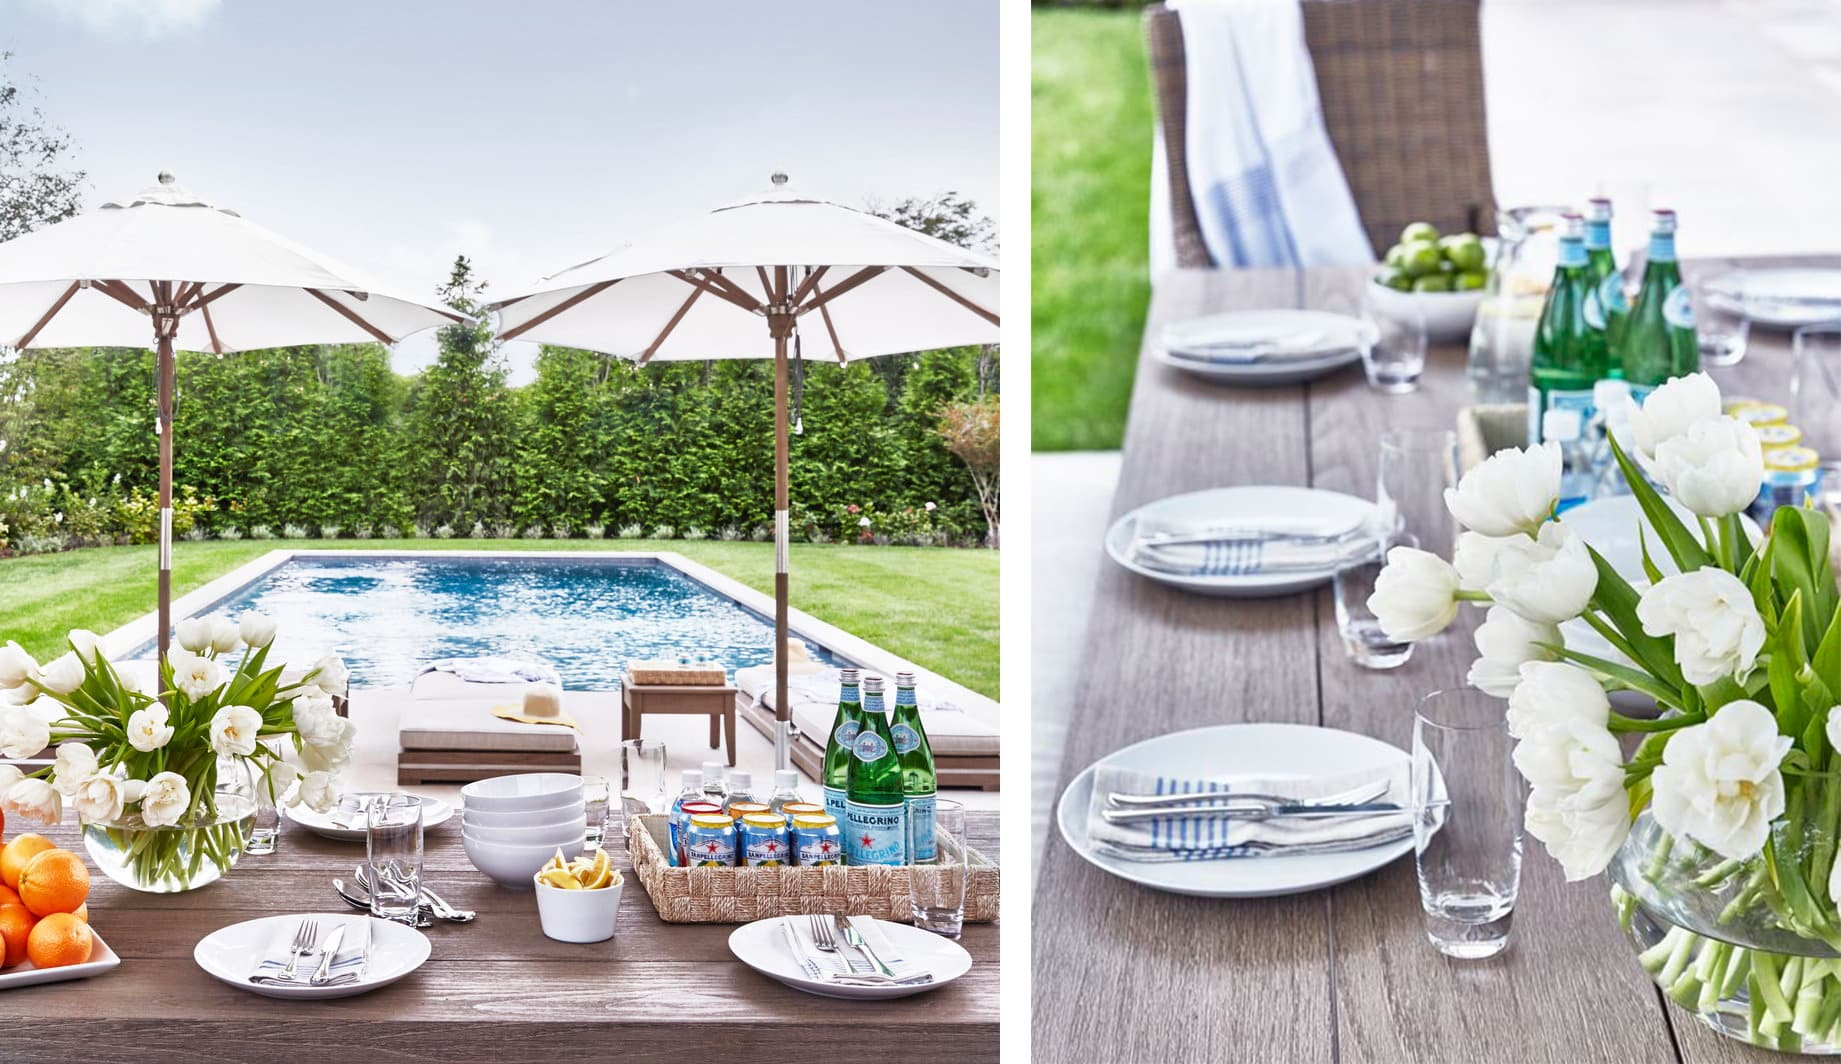 summer soiree in the hamptons table setting by the pool